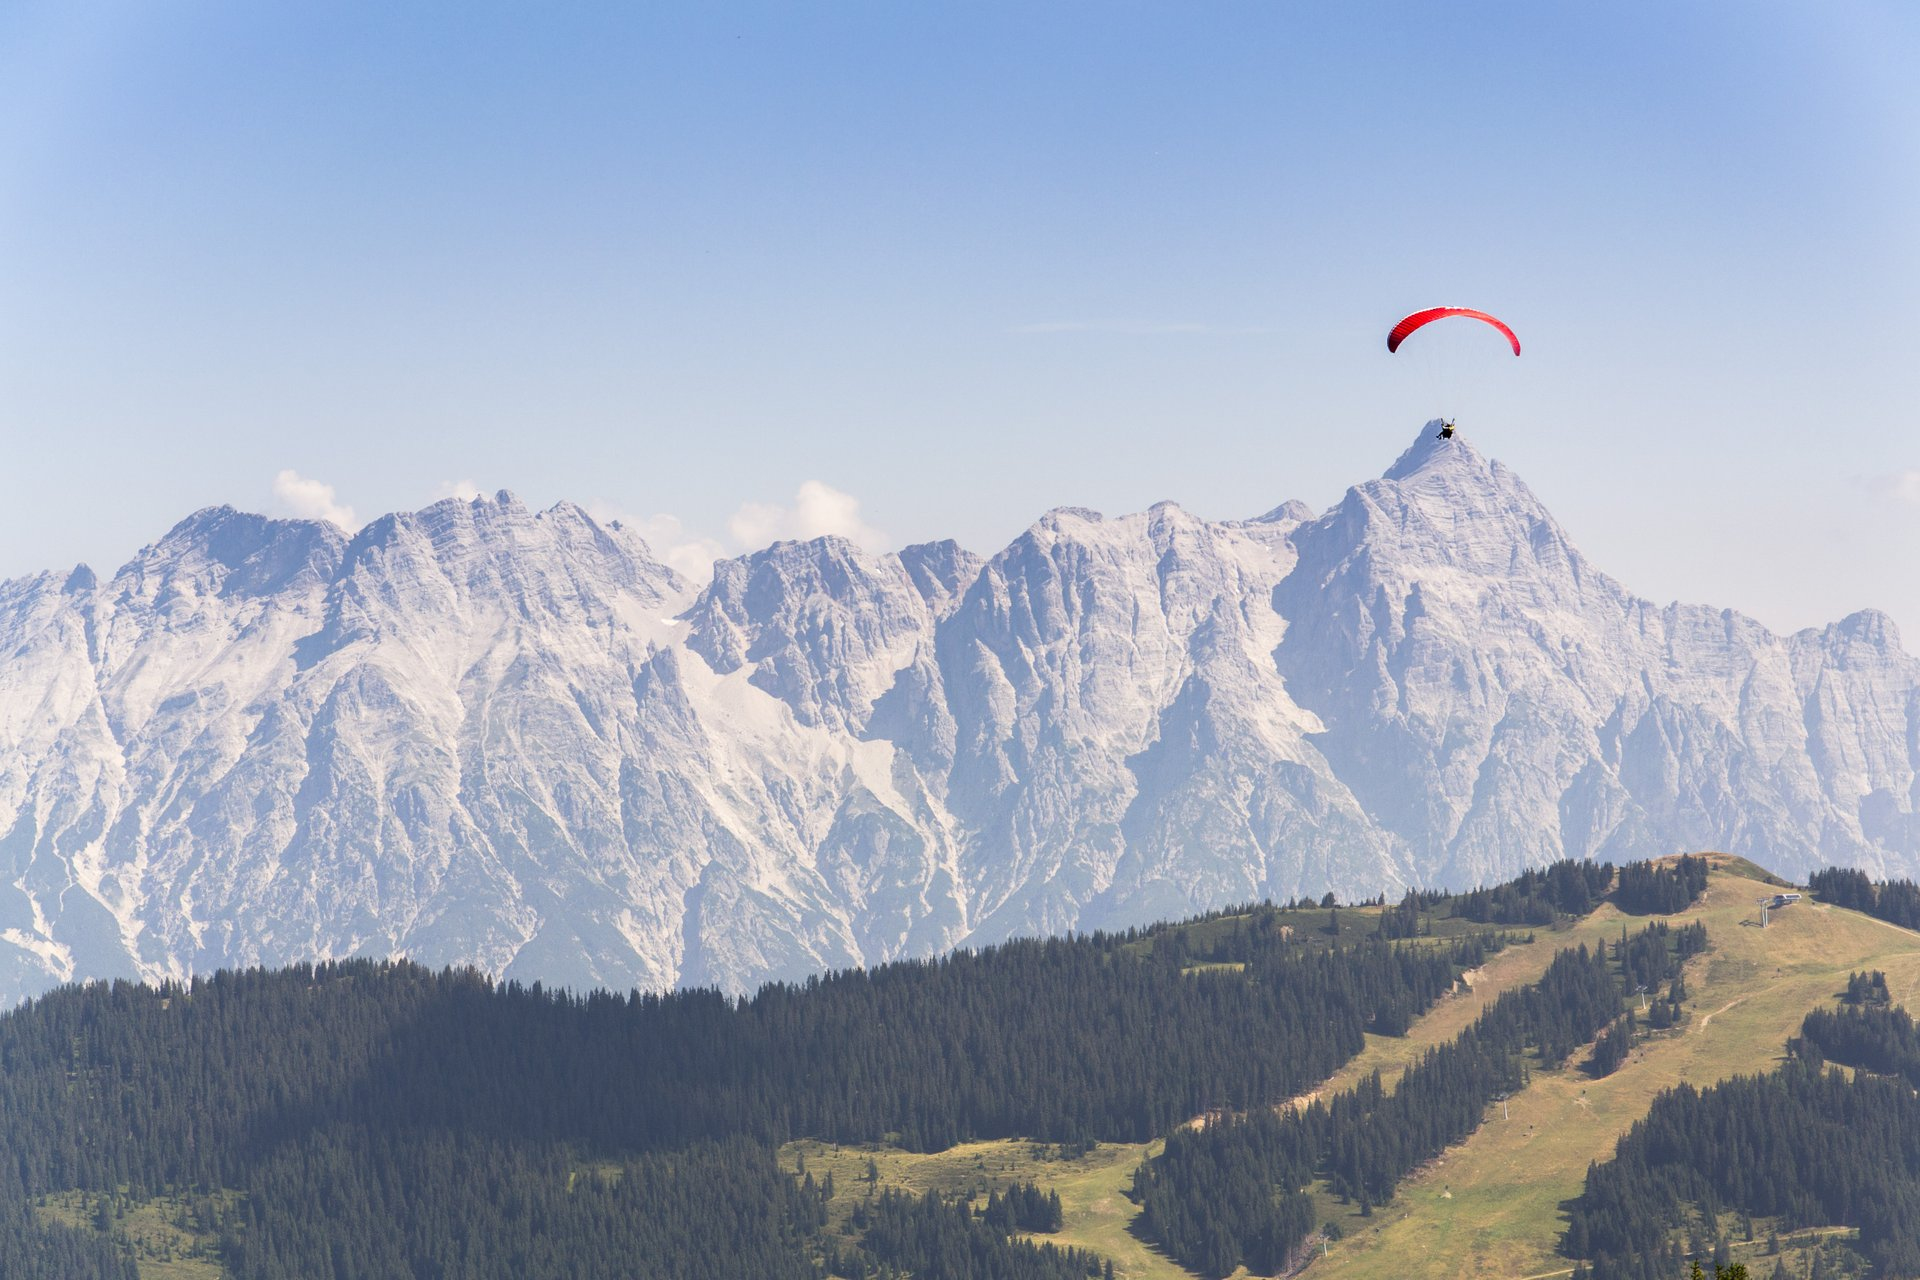 Paragliding and Hang Gliding in Austria 2020 - Best Time